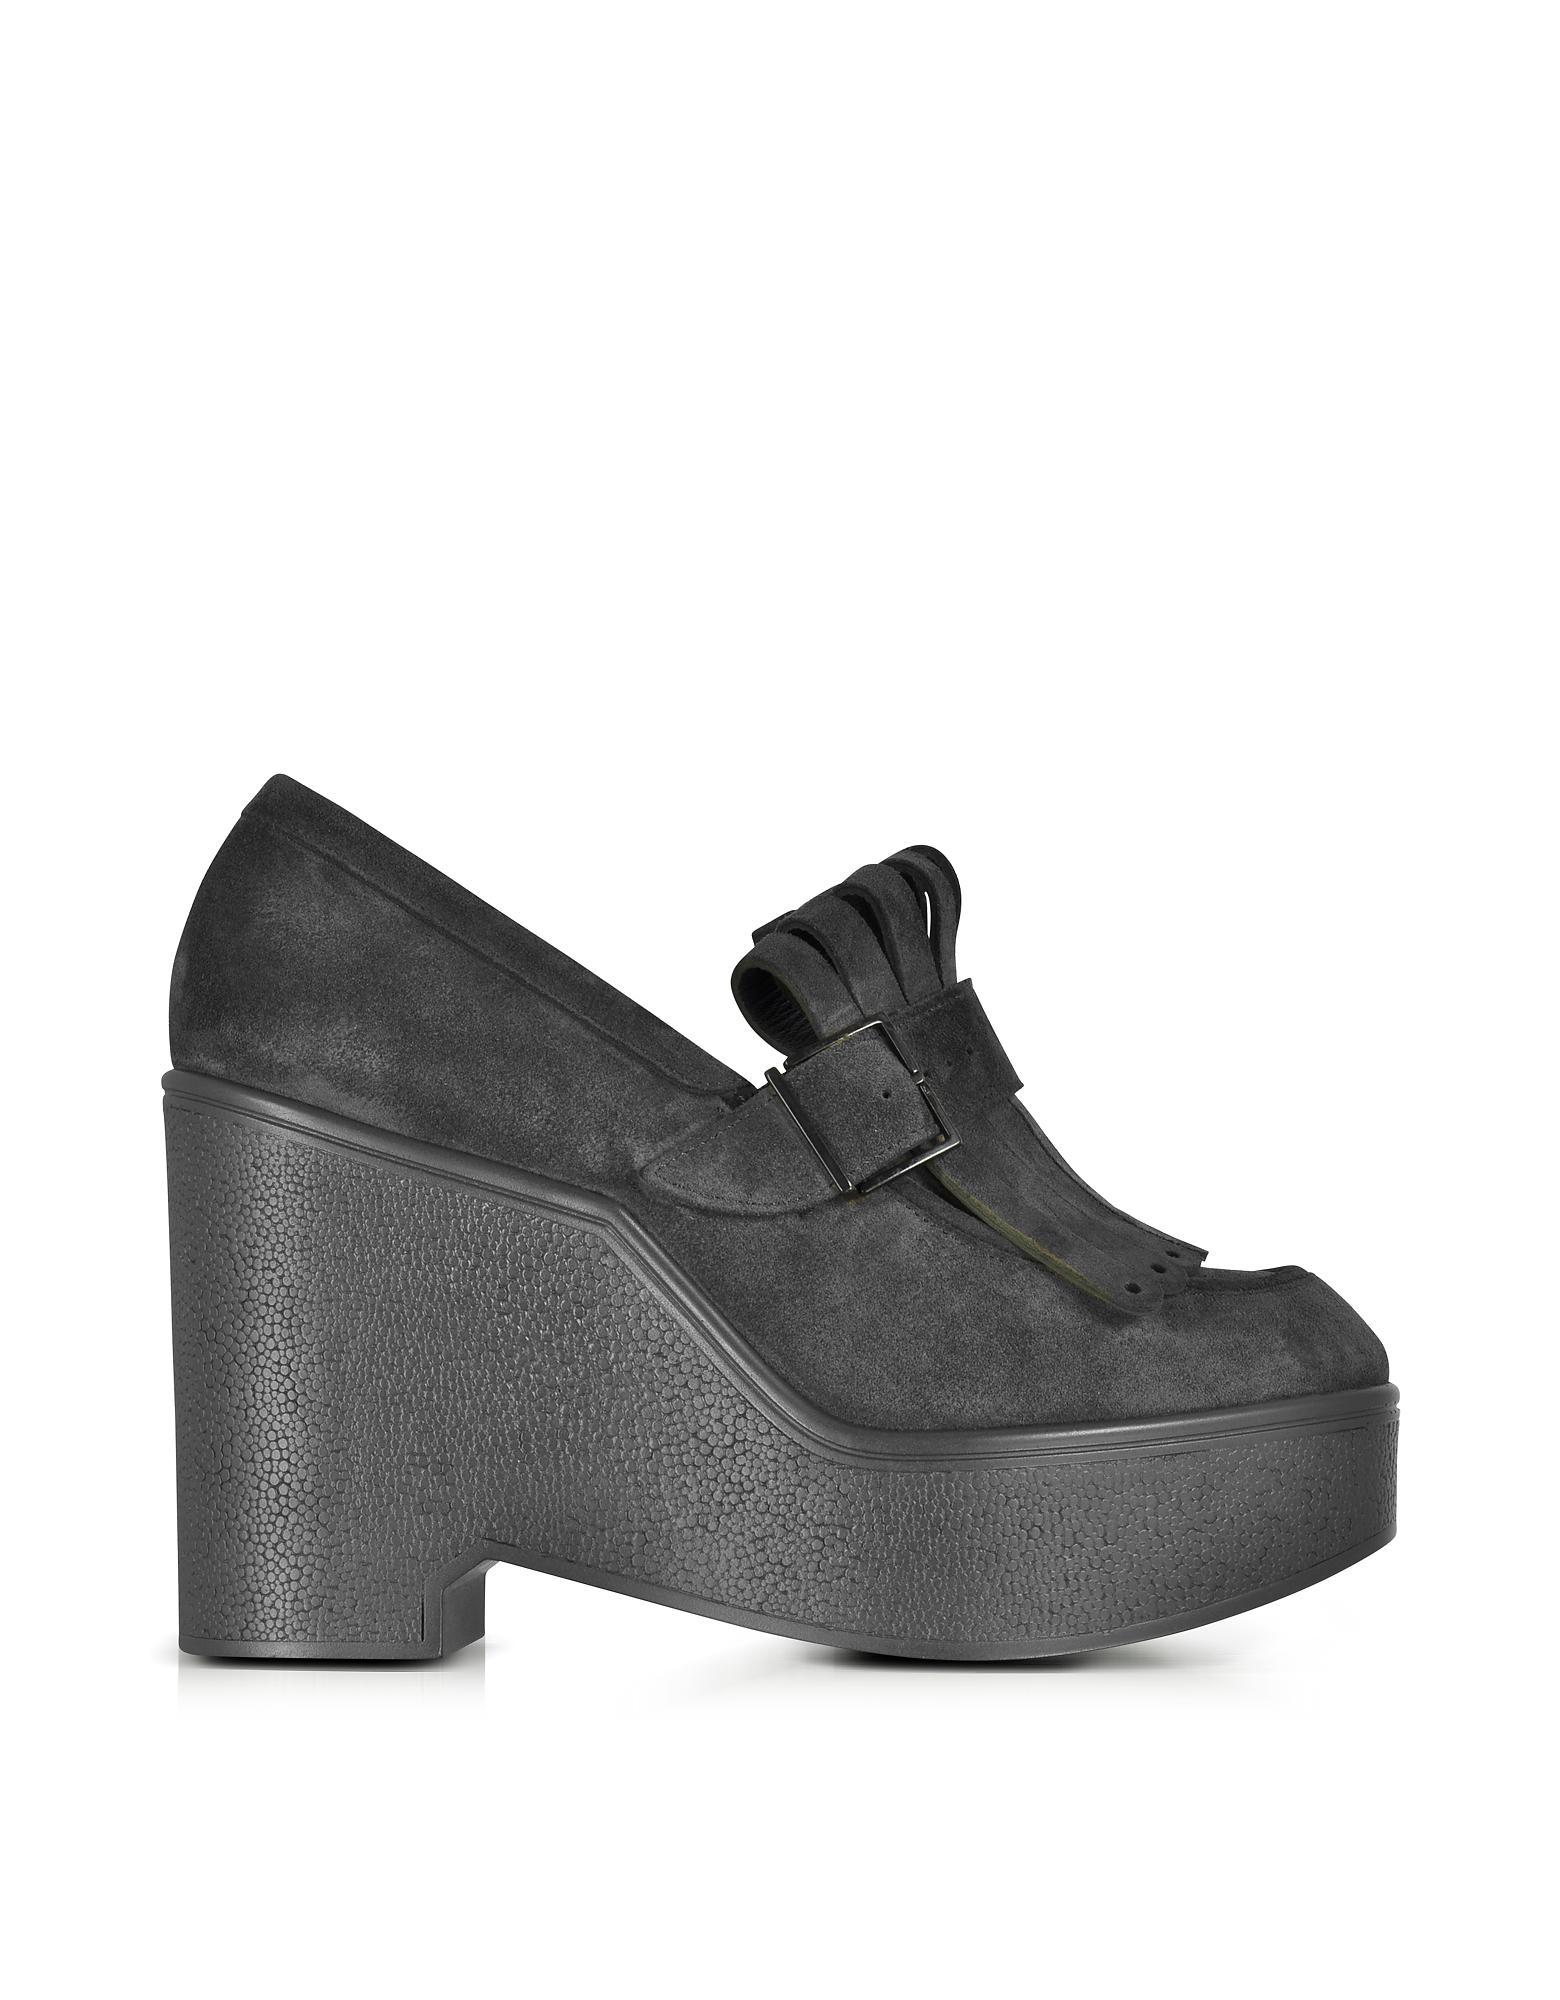 Robert Clergerie Shoes, Boca Black Suede Wedge Loafer